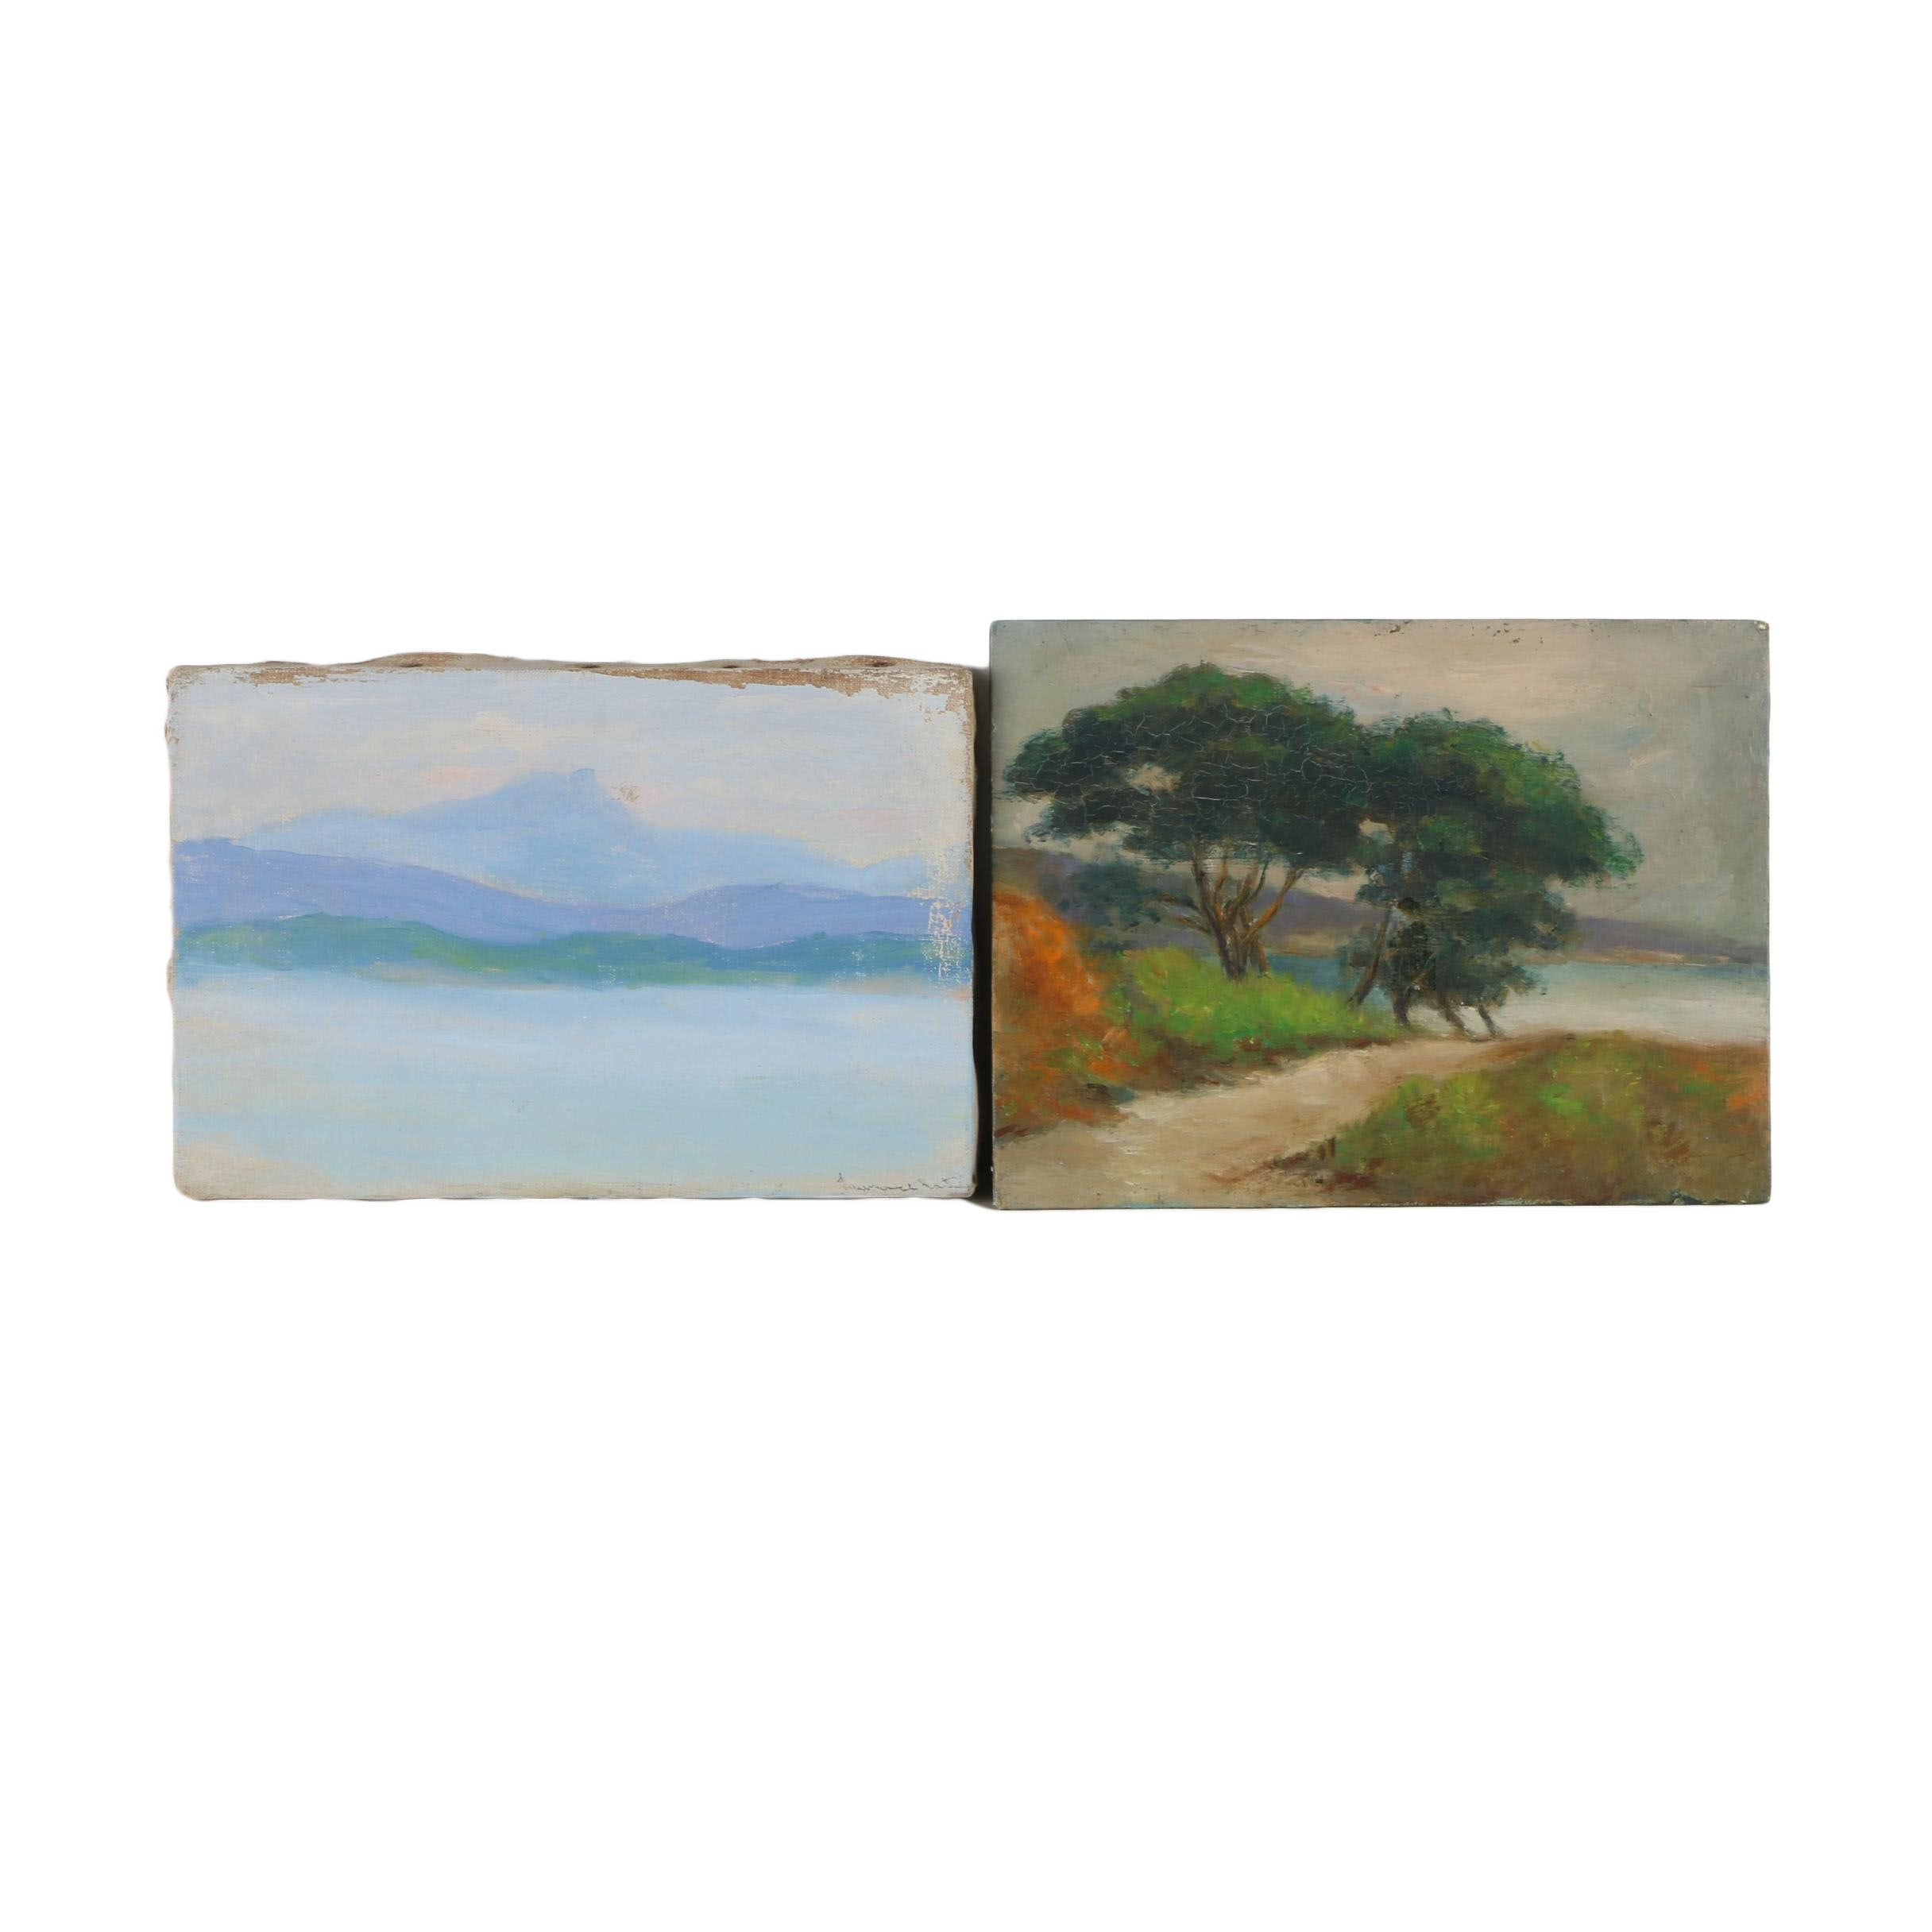 Pair of Oil Paintings of Landscapes